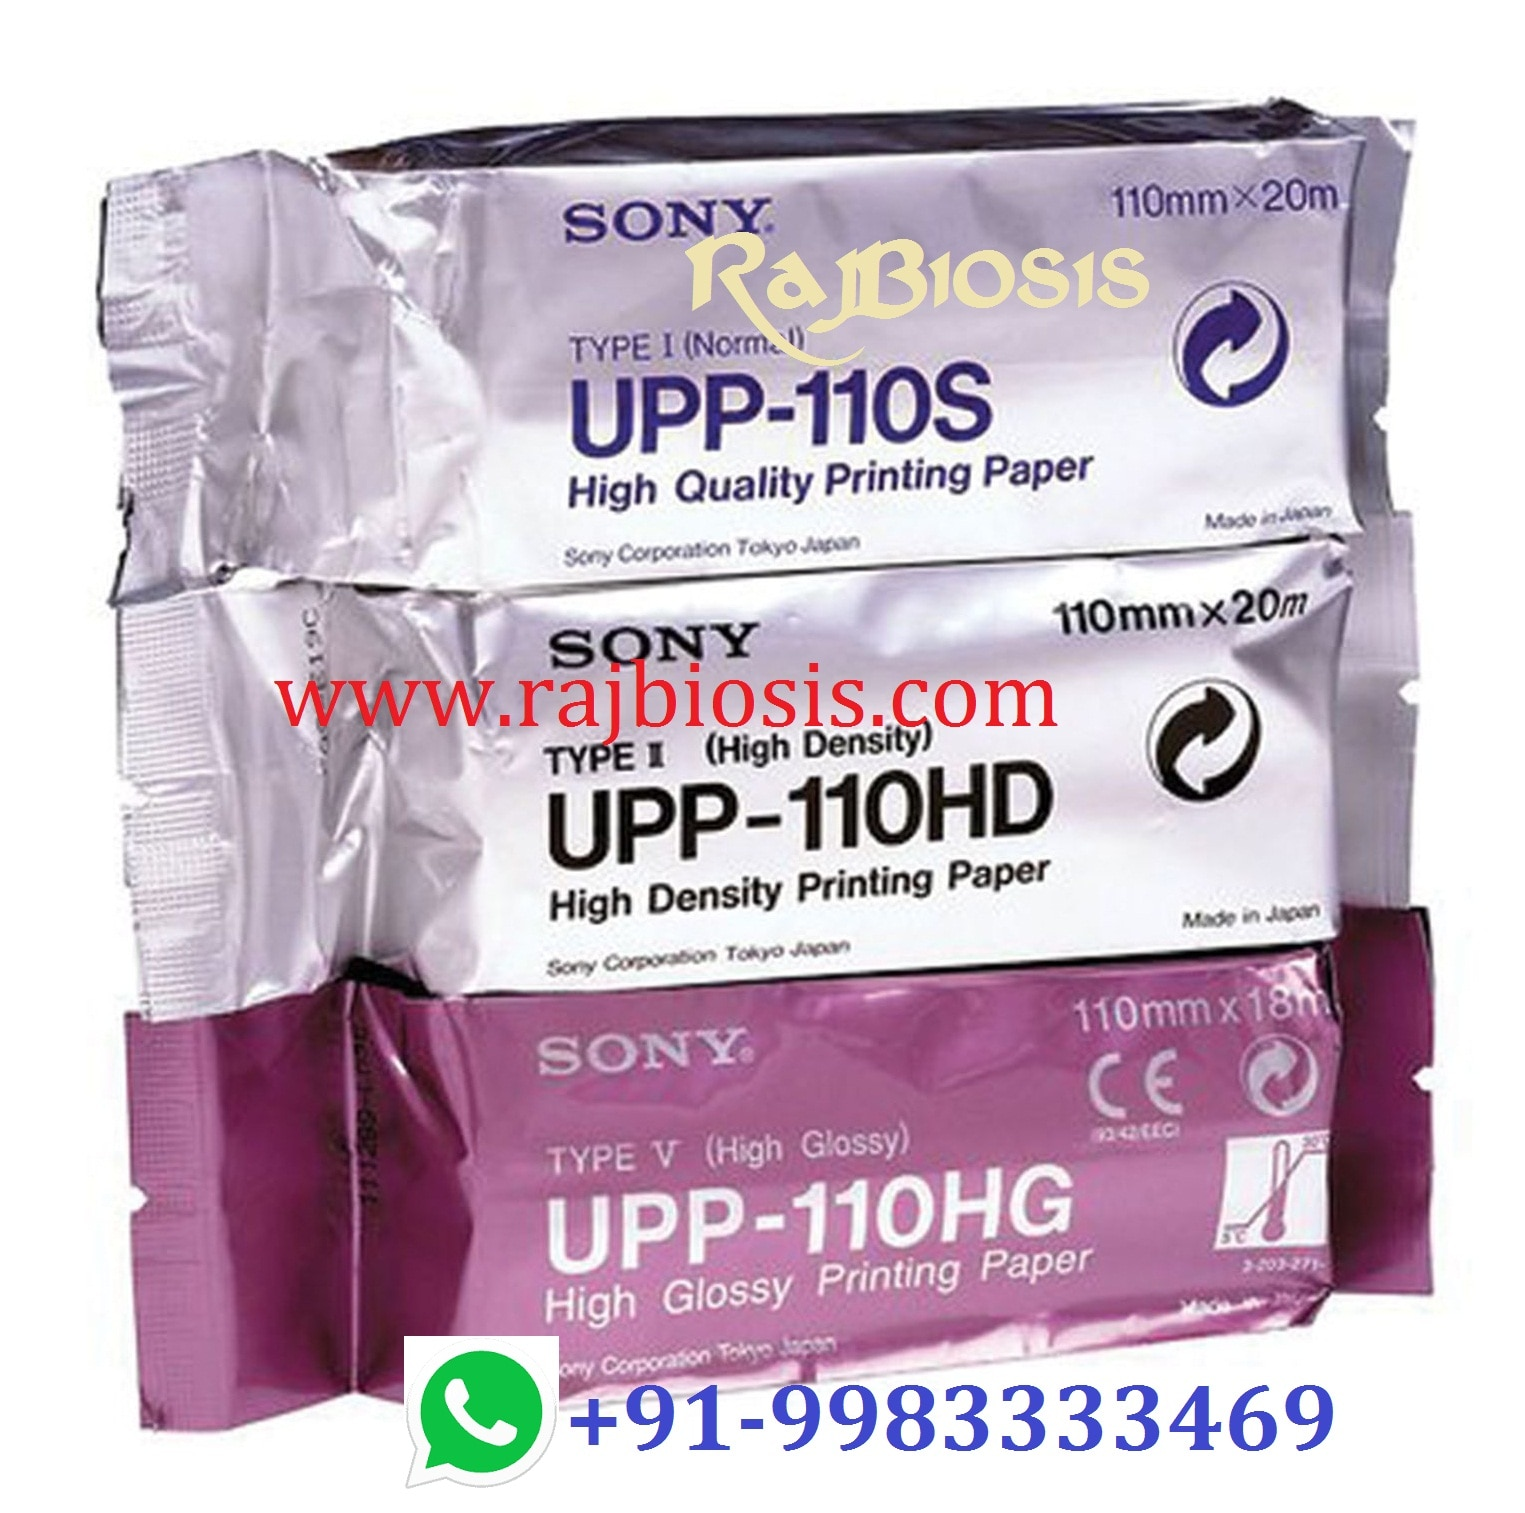 Sony UPP-110S Standard Thermal Ultrasound Paper Roll, B& W, 110mm x 20m, 10 rolls/case      Sony UPP-110S Standard Thermal Ultrasound Paper, B& W, 110mm X 20, 10 rolls/case         Genuine Sony brand paper         110mm wide X 20m long         Approximately 270 prints per roll         For use with the following Sony printers: UP-890MD, UP-895MD, UP-D895, UP-897MD and UP-D897         OEM item no: UPP-110S      Advanced Features:          High water resistance         High-gloss, high-quality prints         Top coat layer of Sony's print media is designed to optimally match the printer heads of Sony's printers         Built in anti-static layer which acts against the buildup of electrostatic energy         Accurate grey-scale reproduction         Minimal curling         High humidity and heat resistance         Superior print quality         Excellent tearing properties         Rigorous manufacturing quality control systems Ultrasound India, thermal roll India, Thermal paper Rajasthan, Thermal paper India, ultrasound export, ultrasound import, Sonography machine, Sonography paper, Ultrasound gel India, Ultrasound manufacturing, ultrasound roll dealer, ultrasound distributor, Sony roll distributor india, Sony roll dealer Rajasthan, Sony ultrasound roll Jaipur Hydrabad New delhi Punjab South